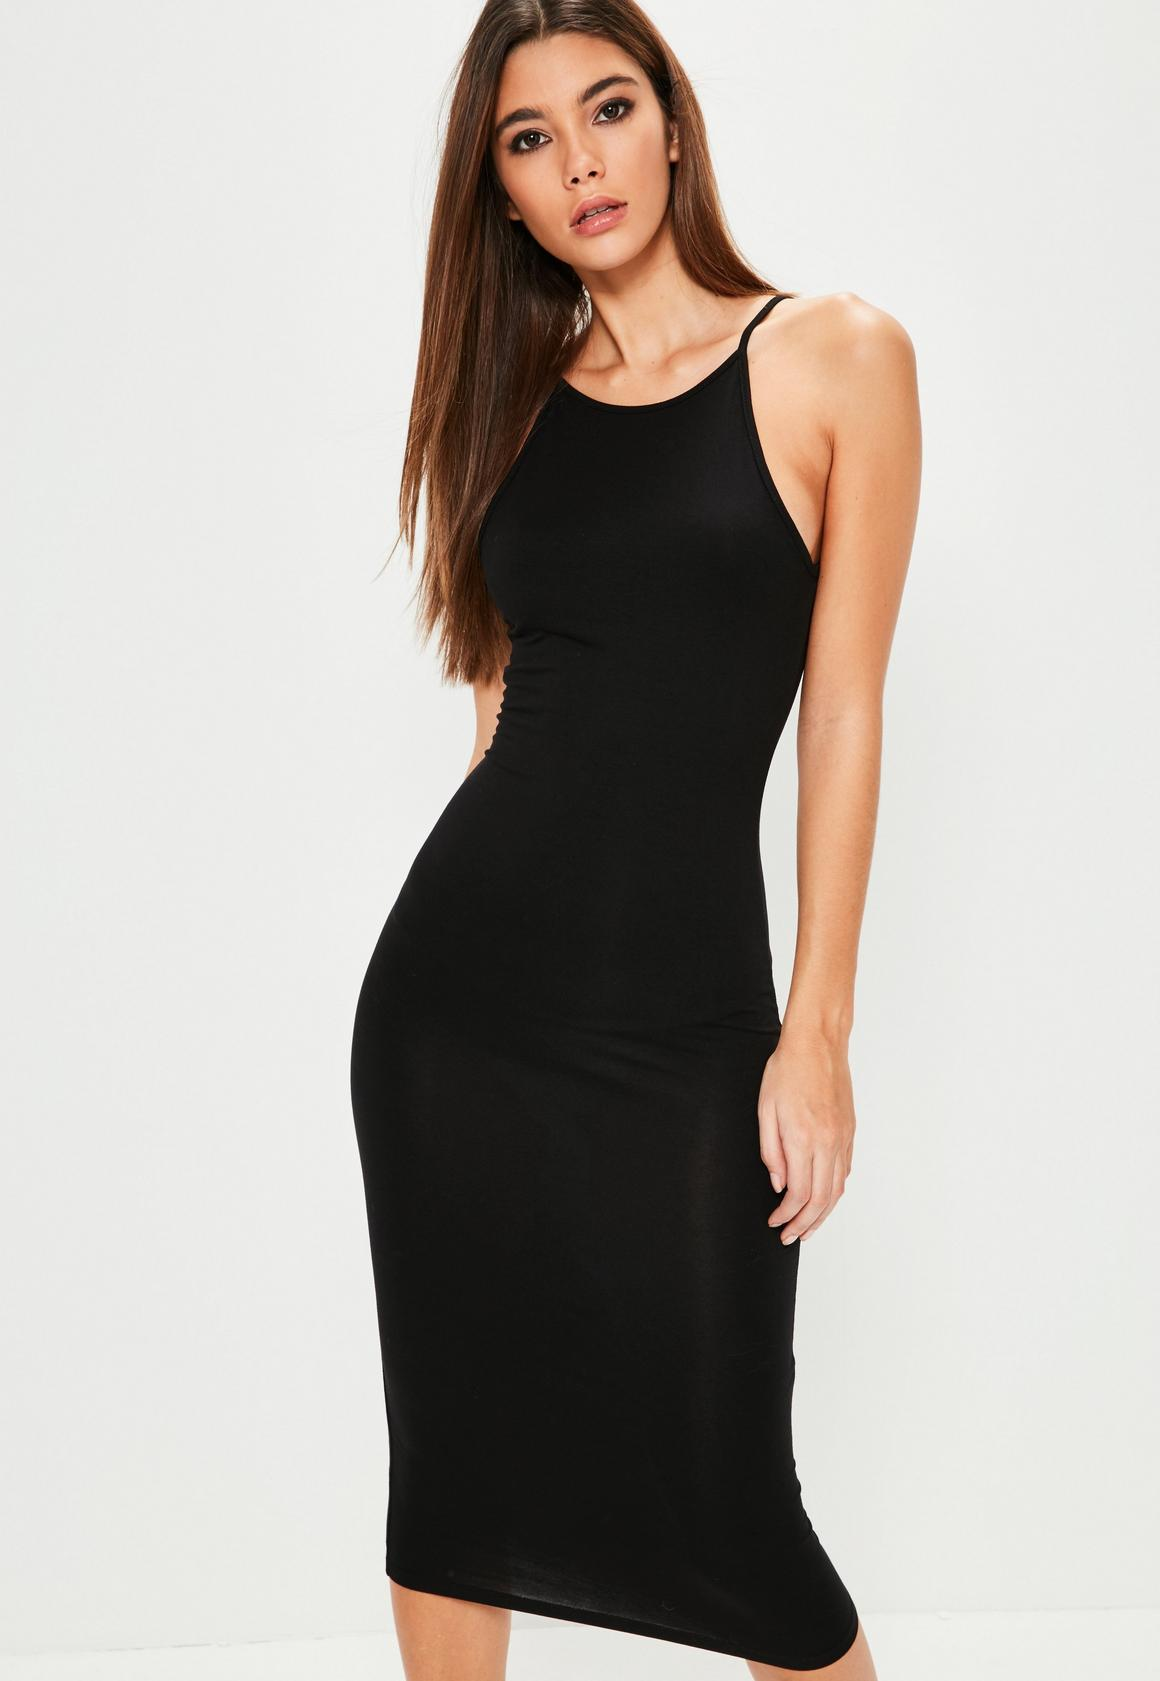 Short little black party dress with back cut outs - Black Racer Neck Midi Dress Black Racer Neck Midi Dress